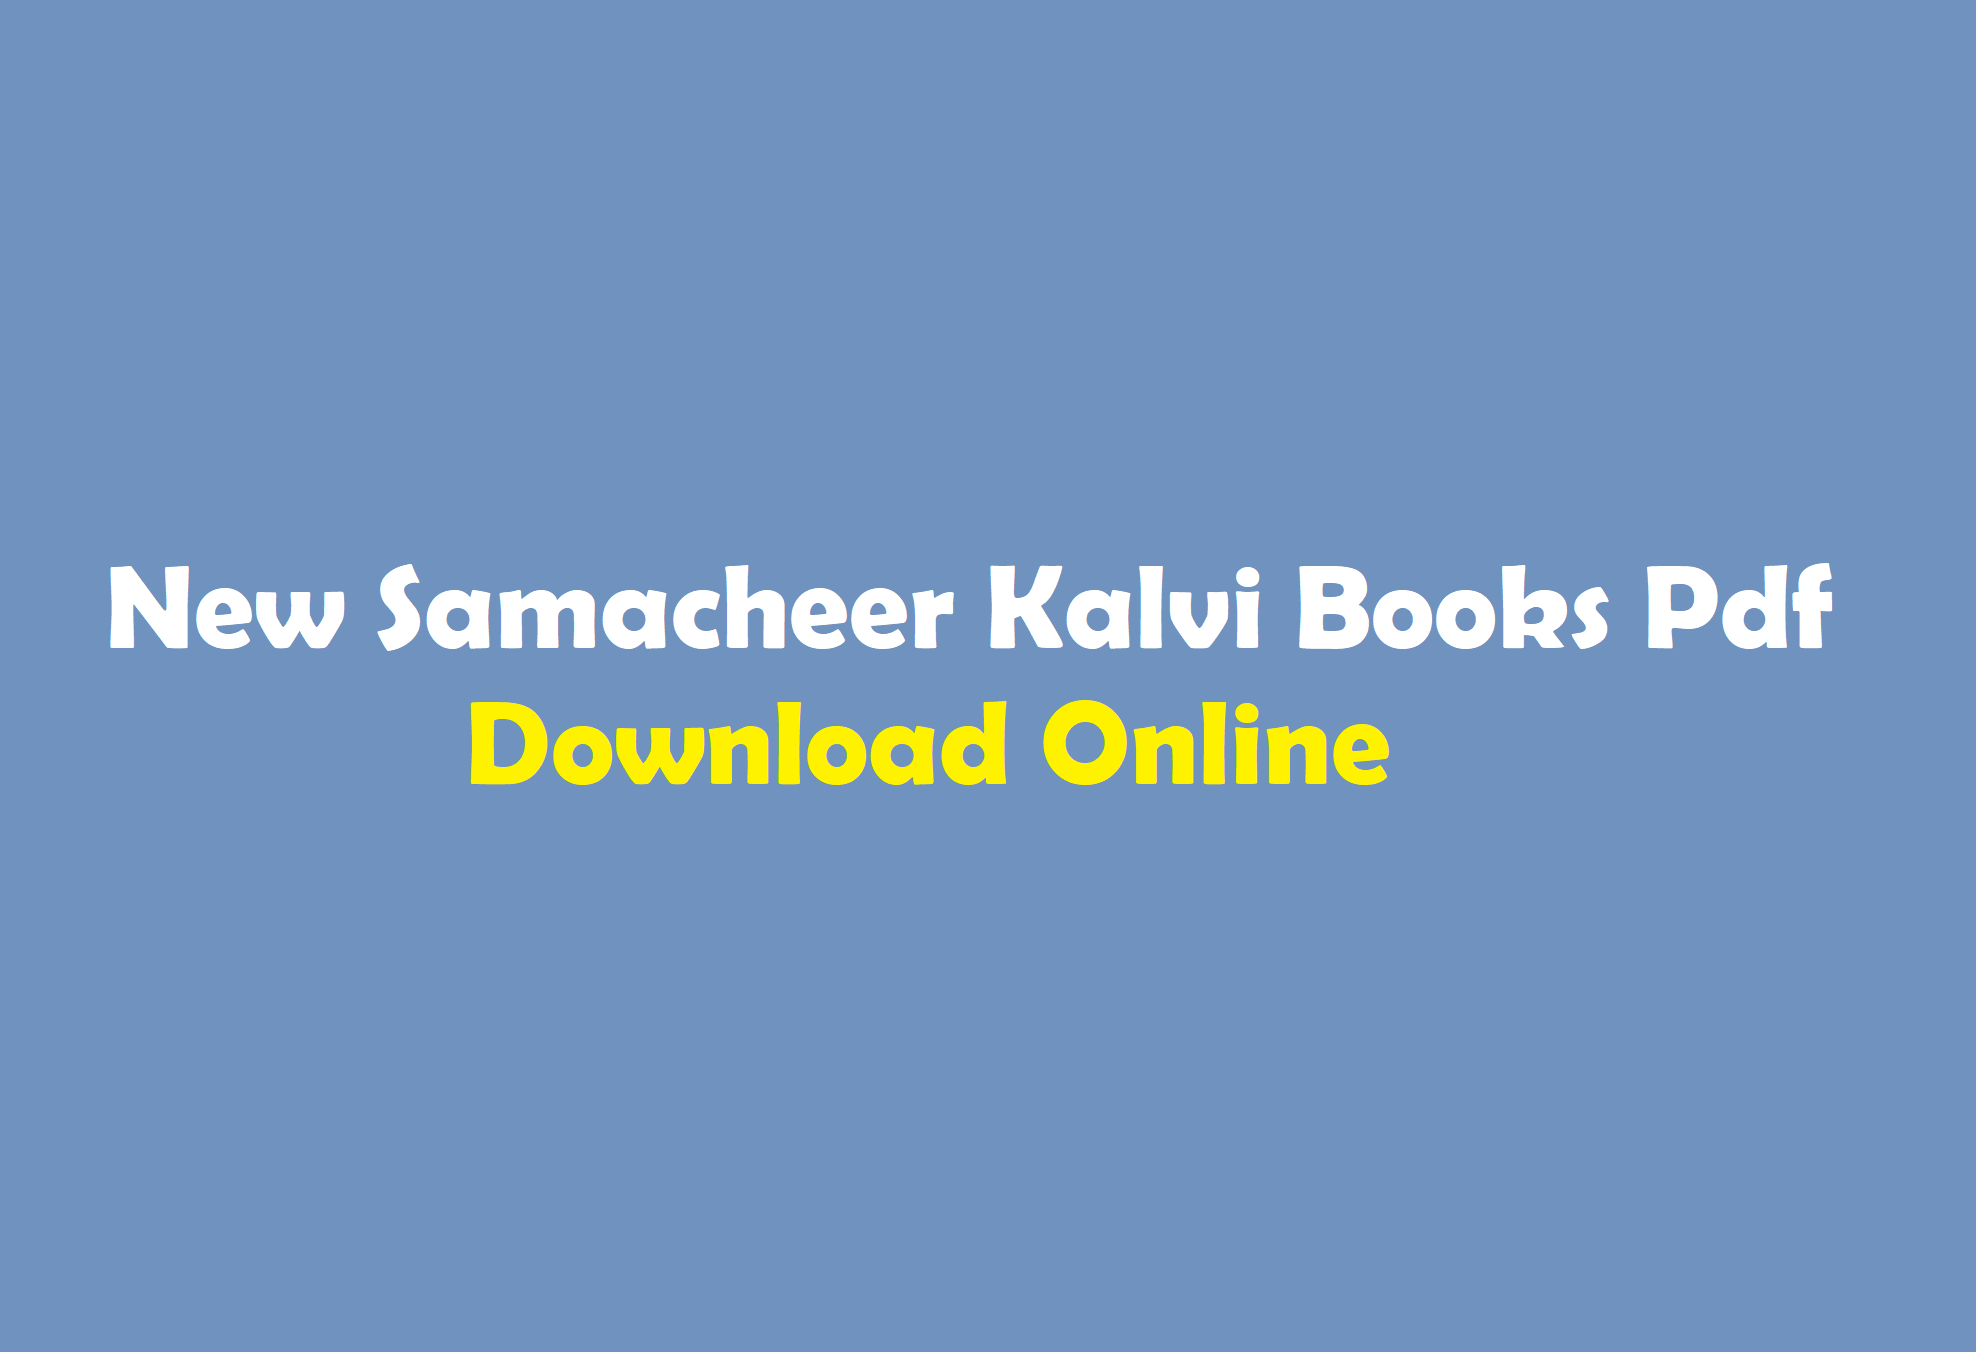 New & Old Samacheer Kalvi Books Pdf Download Online New TN School Books -  WINMEEN